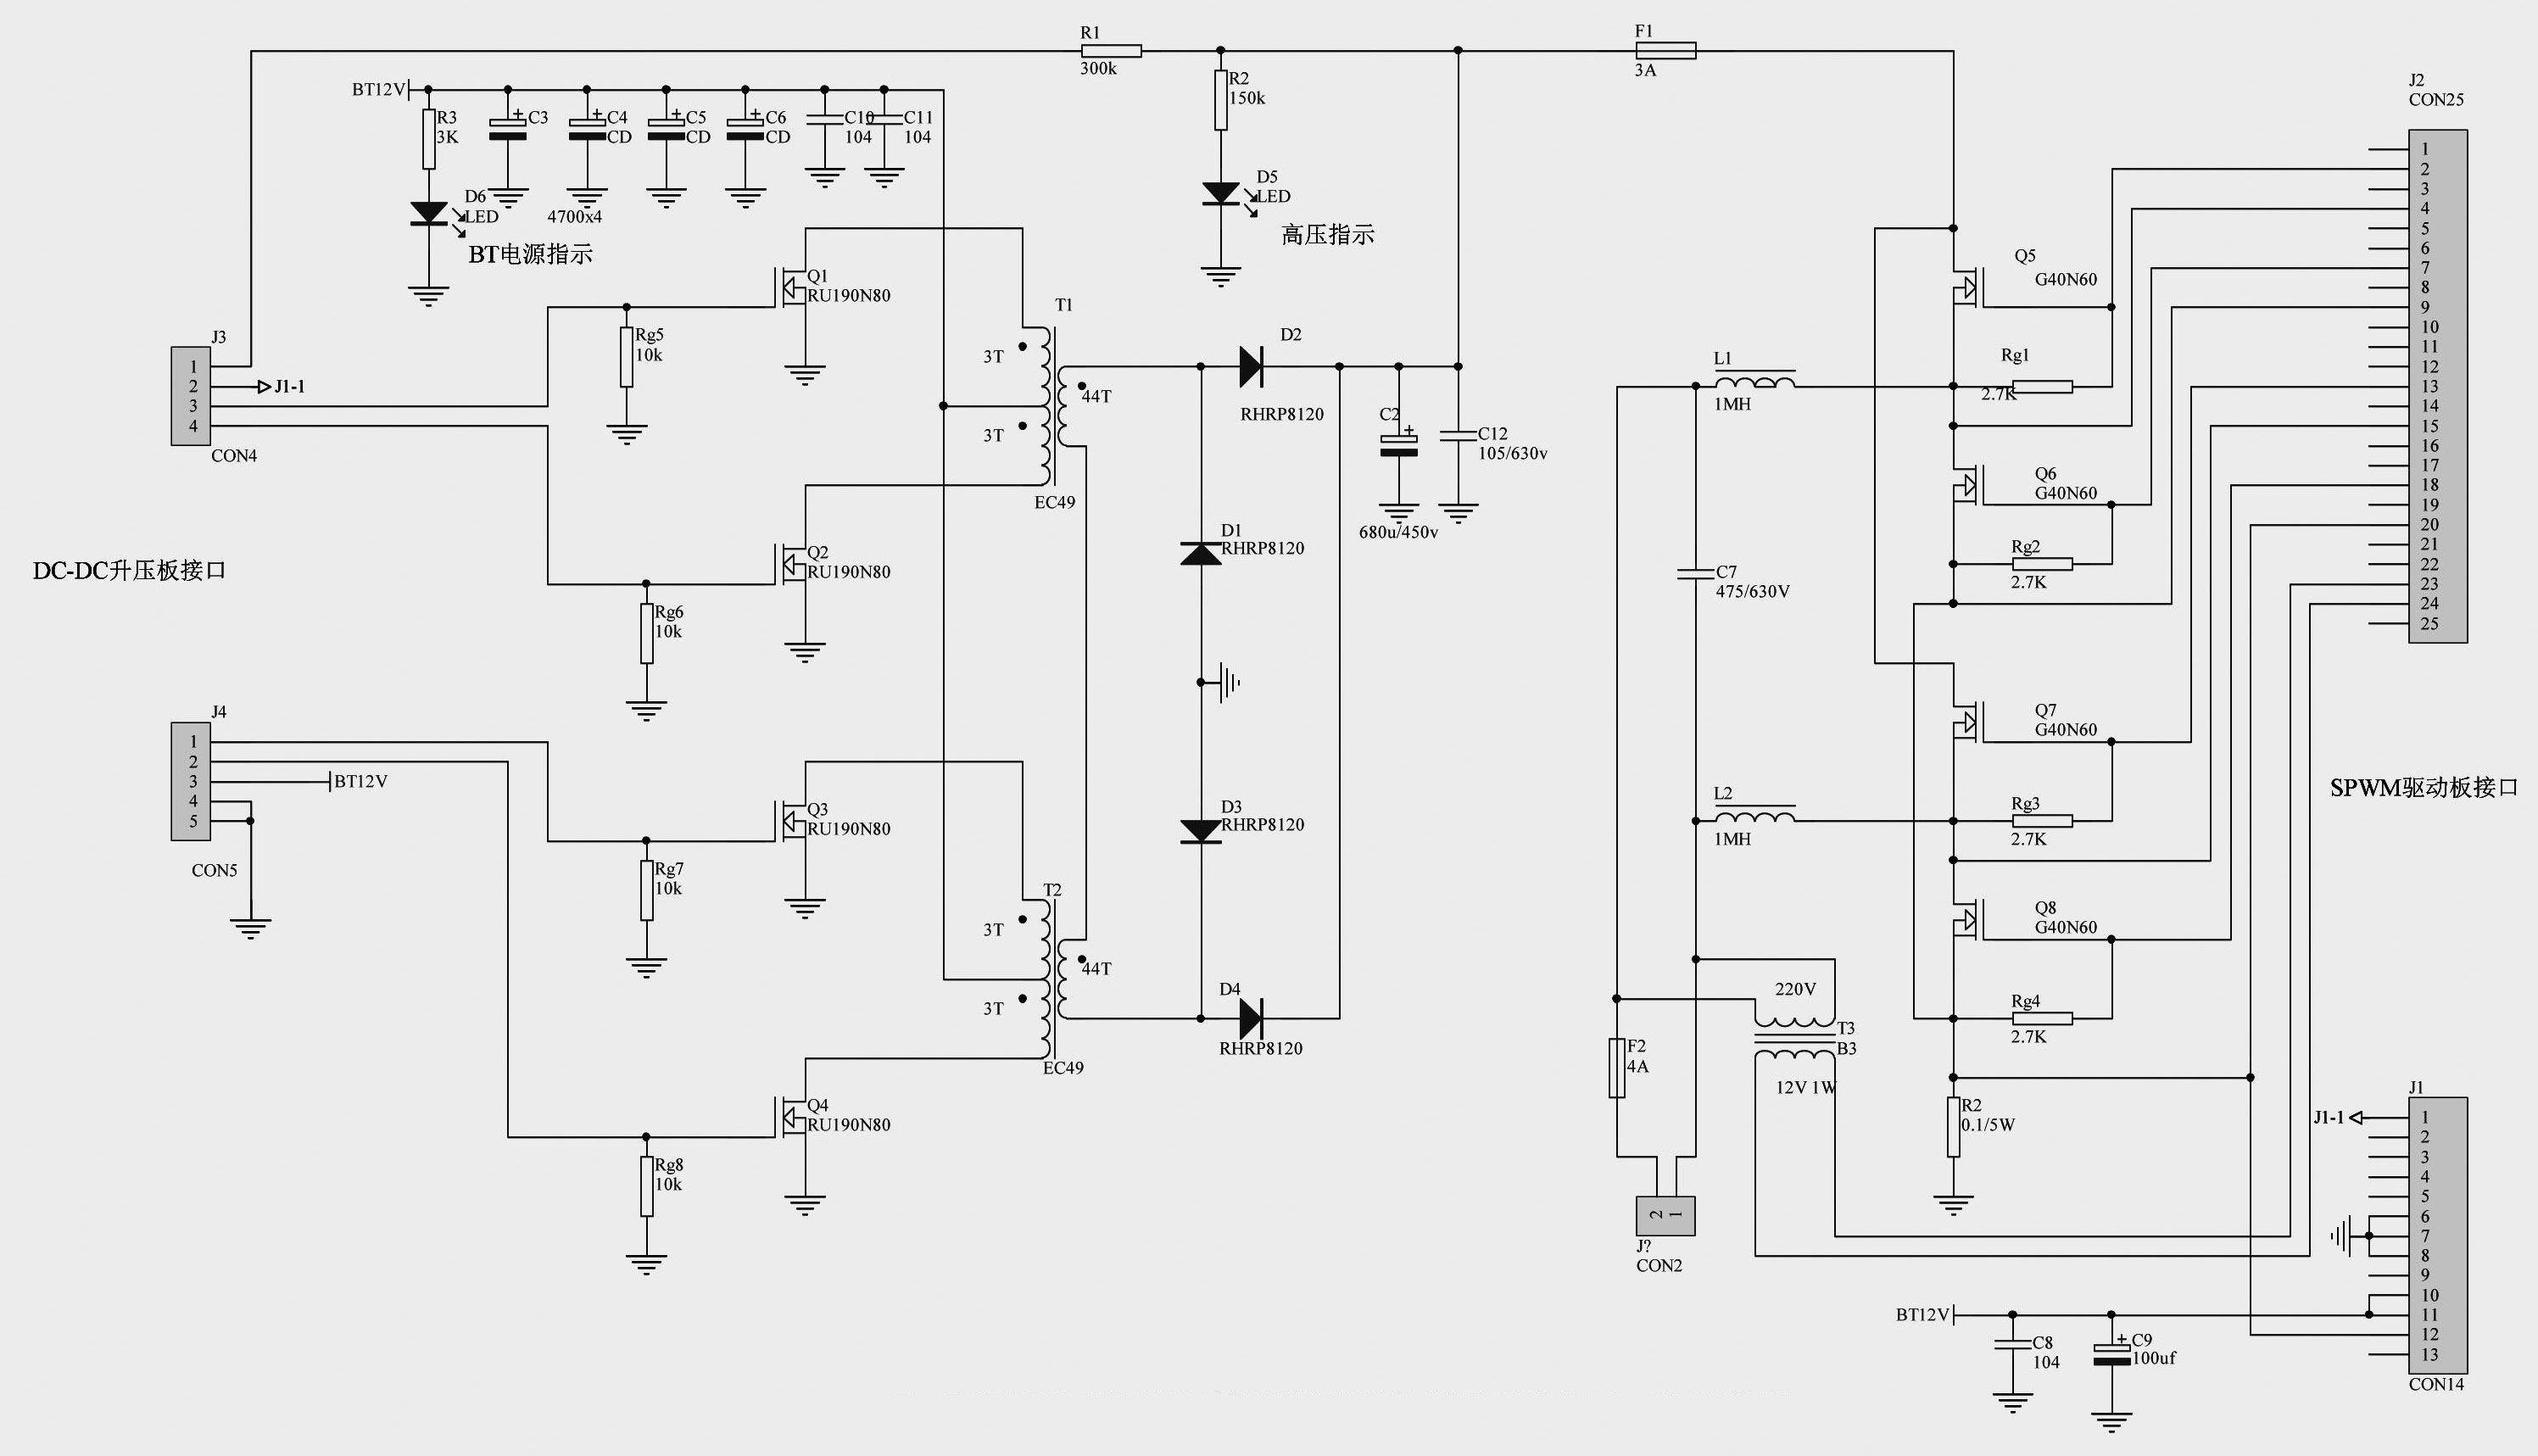 34 additionally Mag o Circuit Diagram together with 12v 1000w Inverter Design Process further Split Type Aircon Wiring Diagram furthermore 975mg4. on electronic ballast wiring diagram